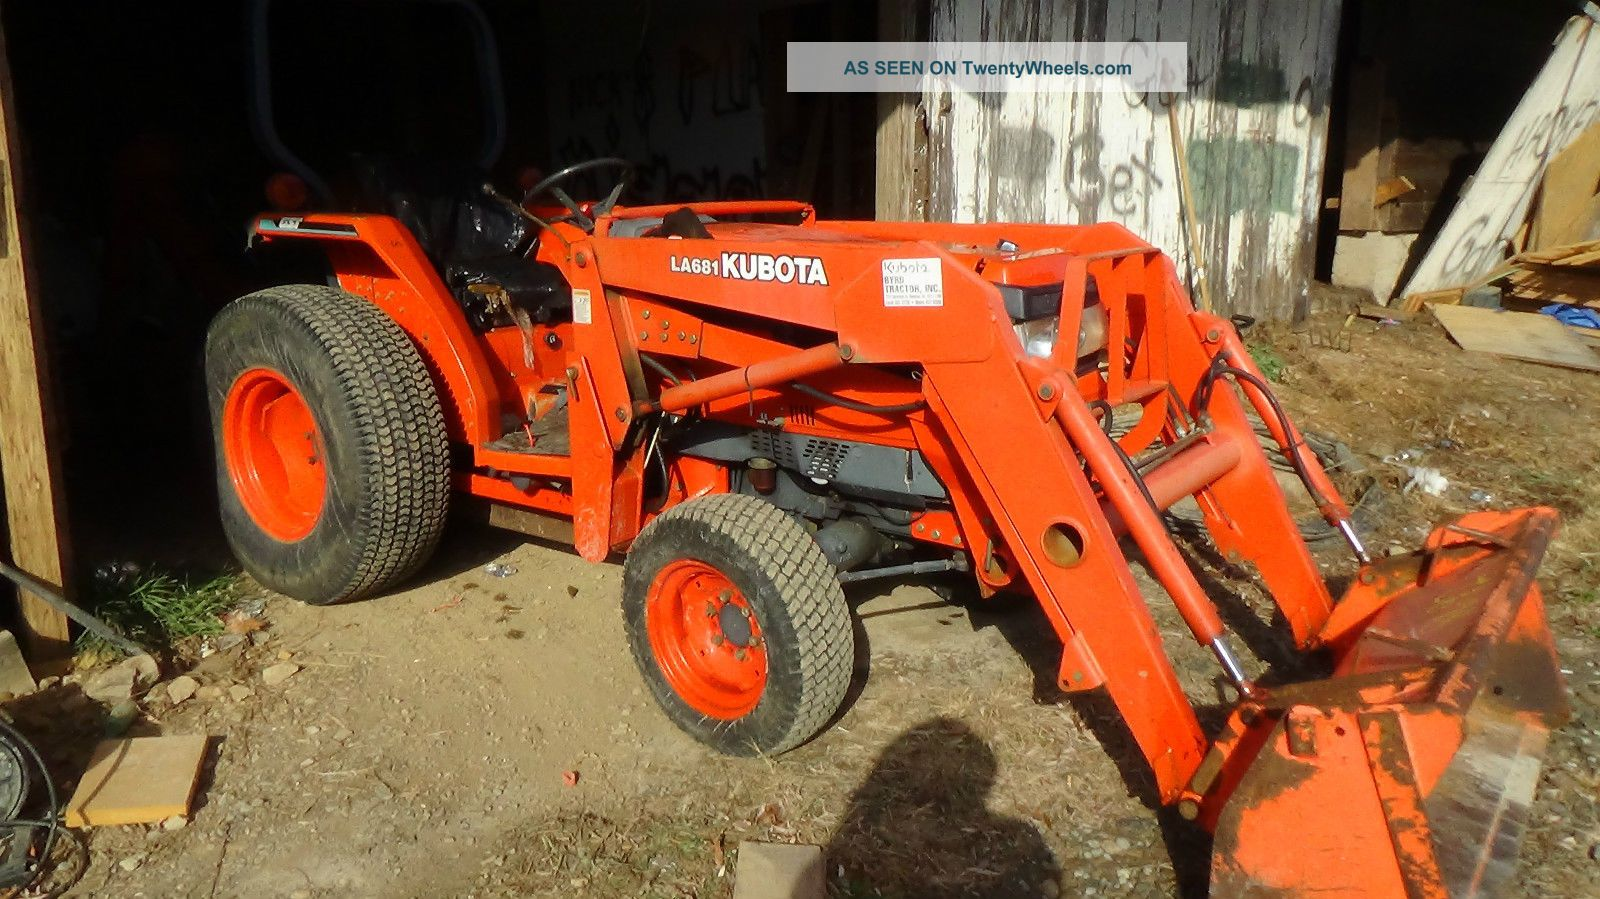 2001 Kubota L3710 4x4 Tractor With Loader And Backhoe